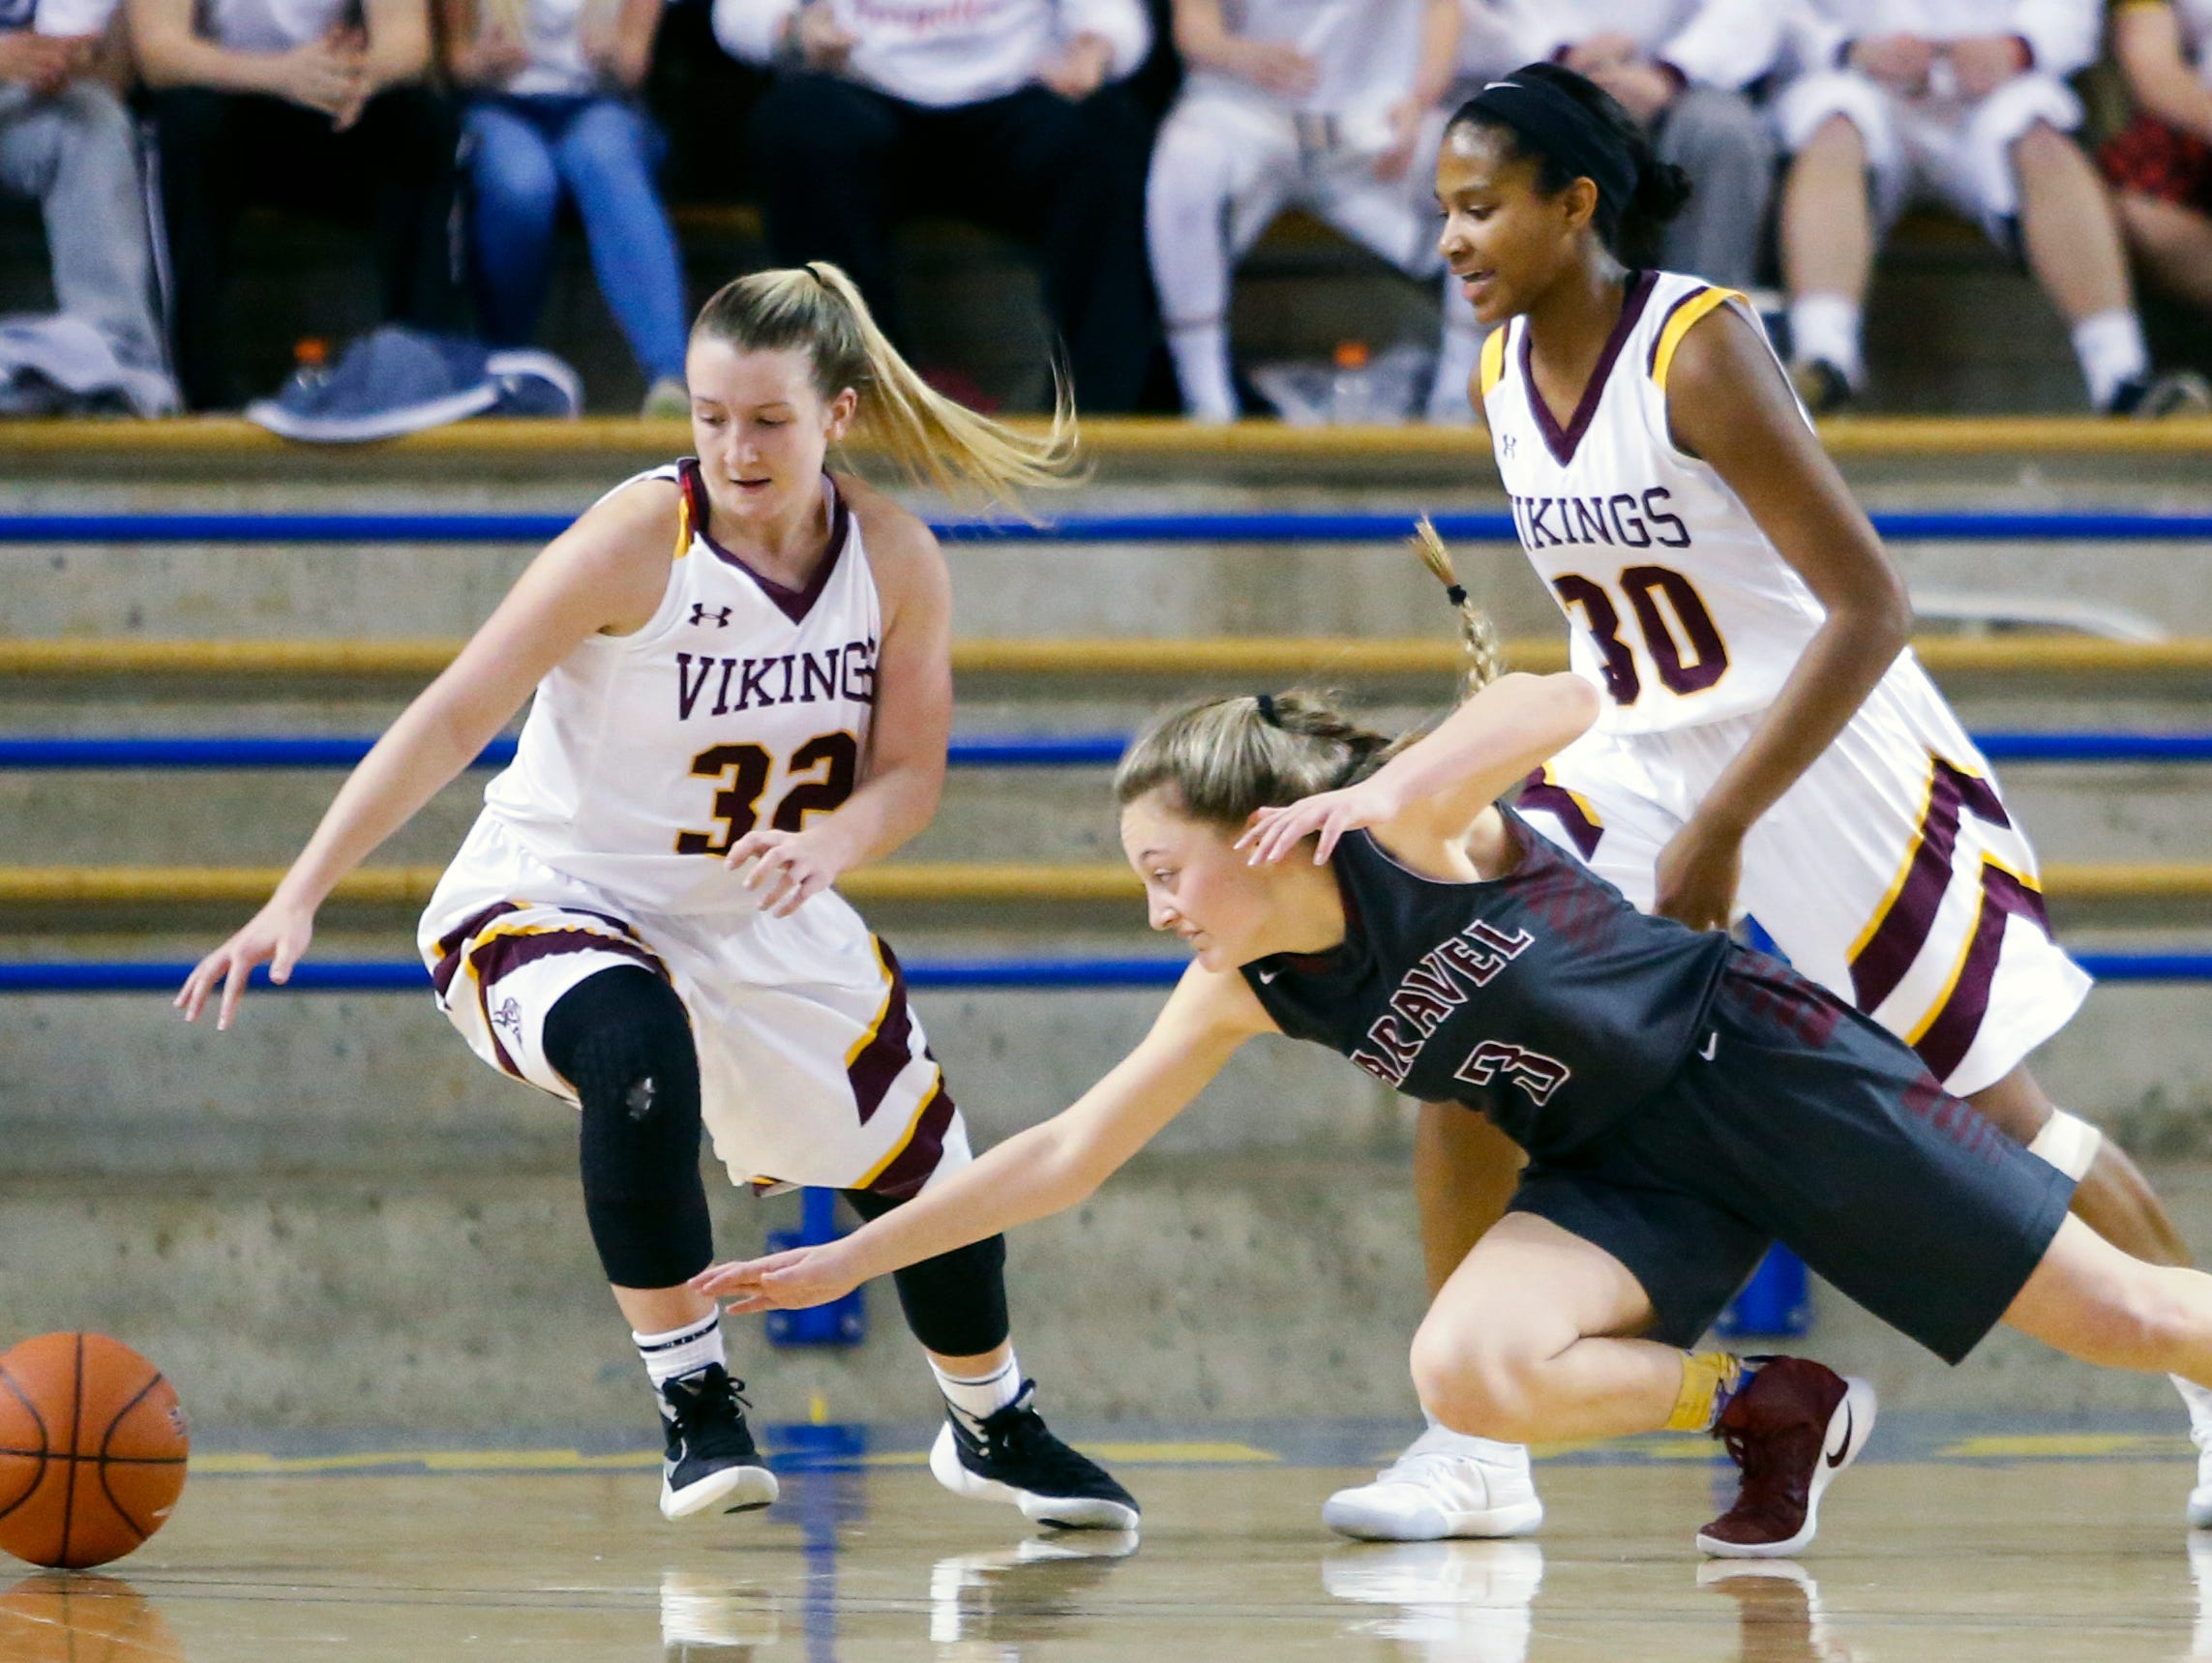 Caravel's Karli Cauley (3) moves for a loose ball between St. Elizabeth's Alexis Bromwell (left) and Alanna Speaks in the second half of Caravel's win in a DIAA state tournament semifinal Wednesday at the Bob Carpenter Center.